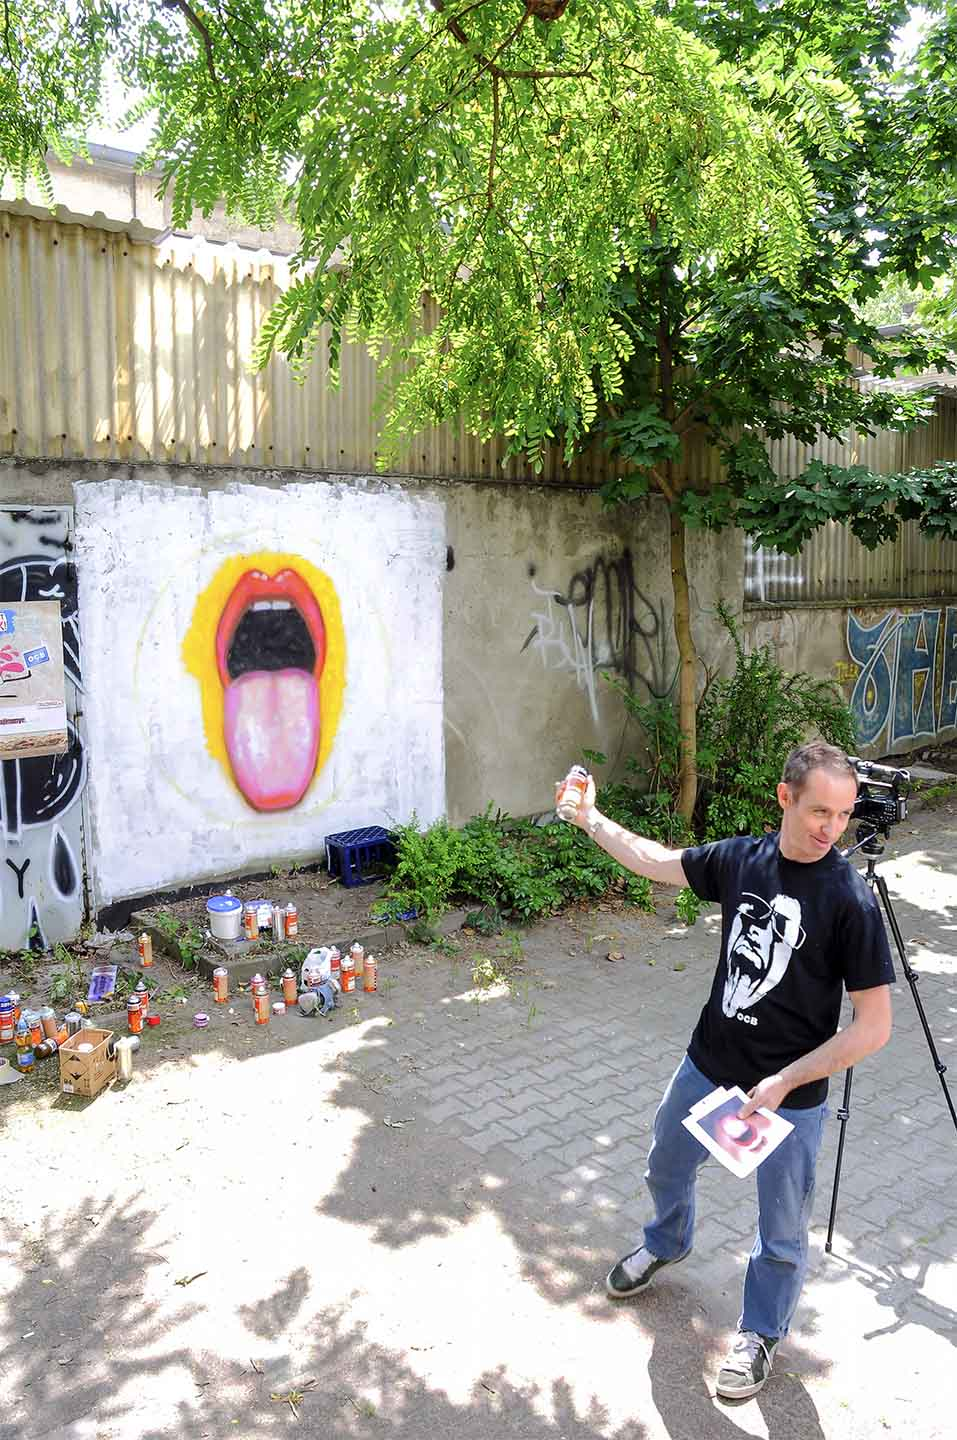 Painting of a tongue by Street Artist Jimmy C. aka. James Cochran in Berlin